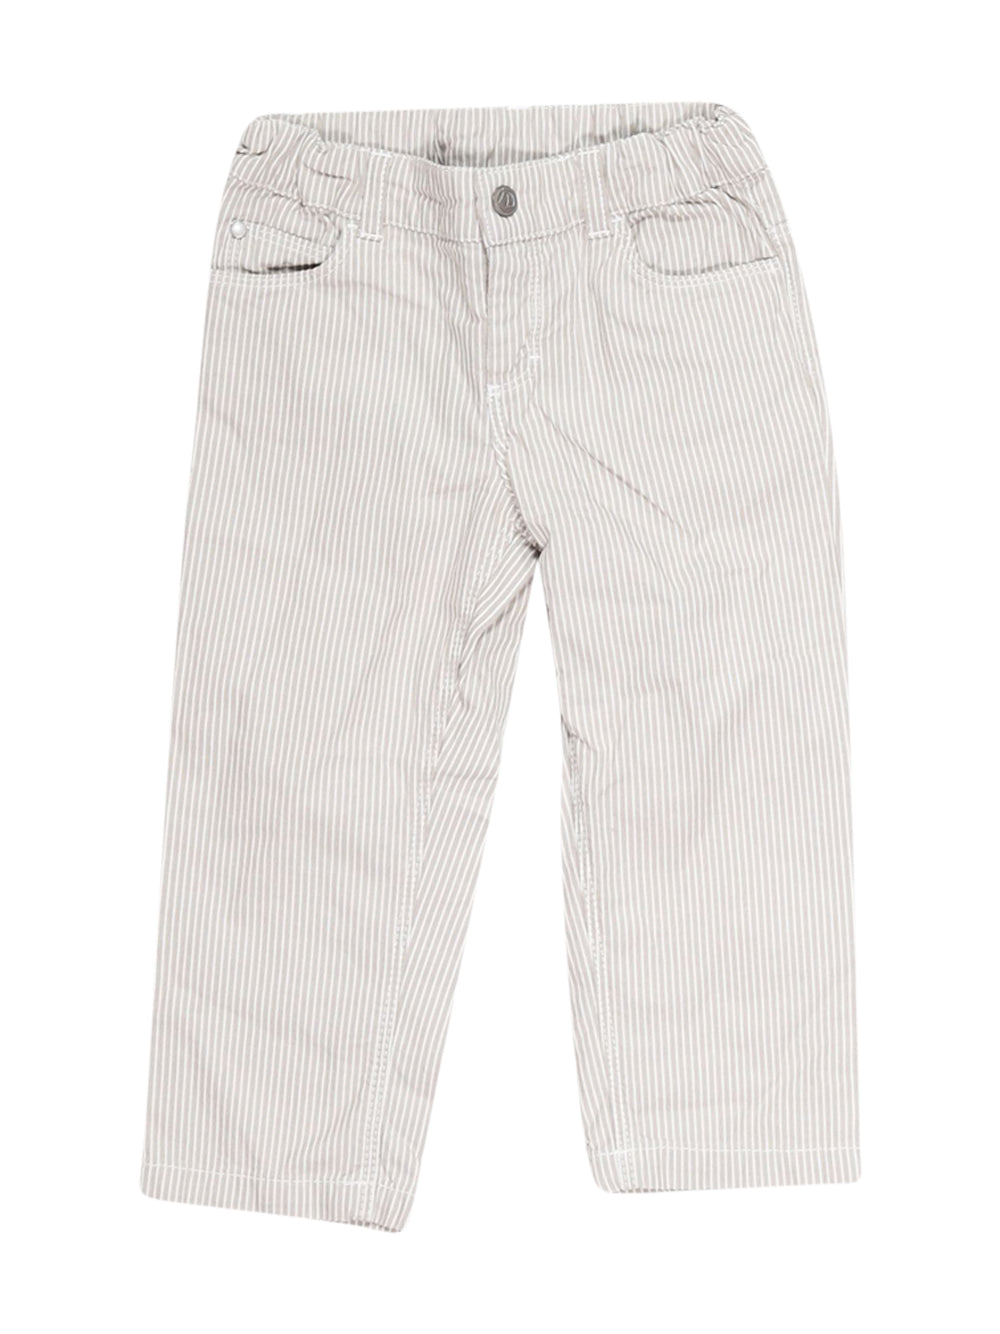 Front photo of Preloved Petit Bateau Grey Boy's trousers - size 18-24 mths